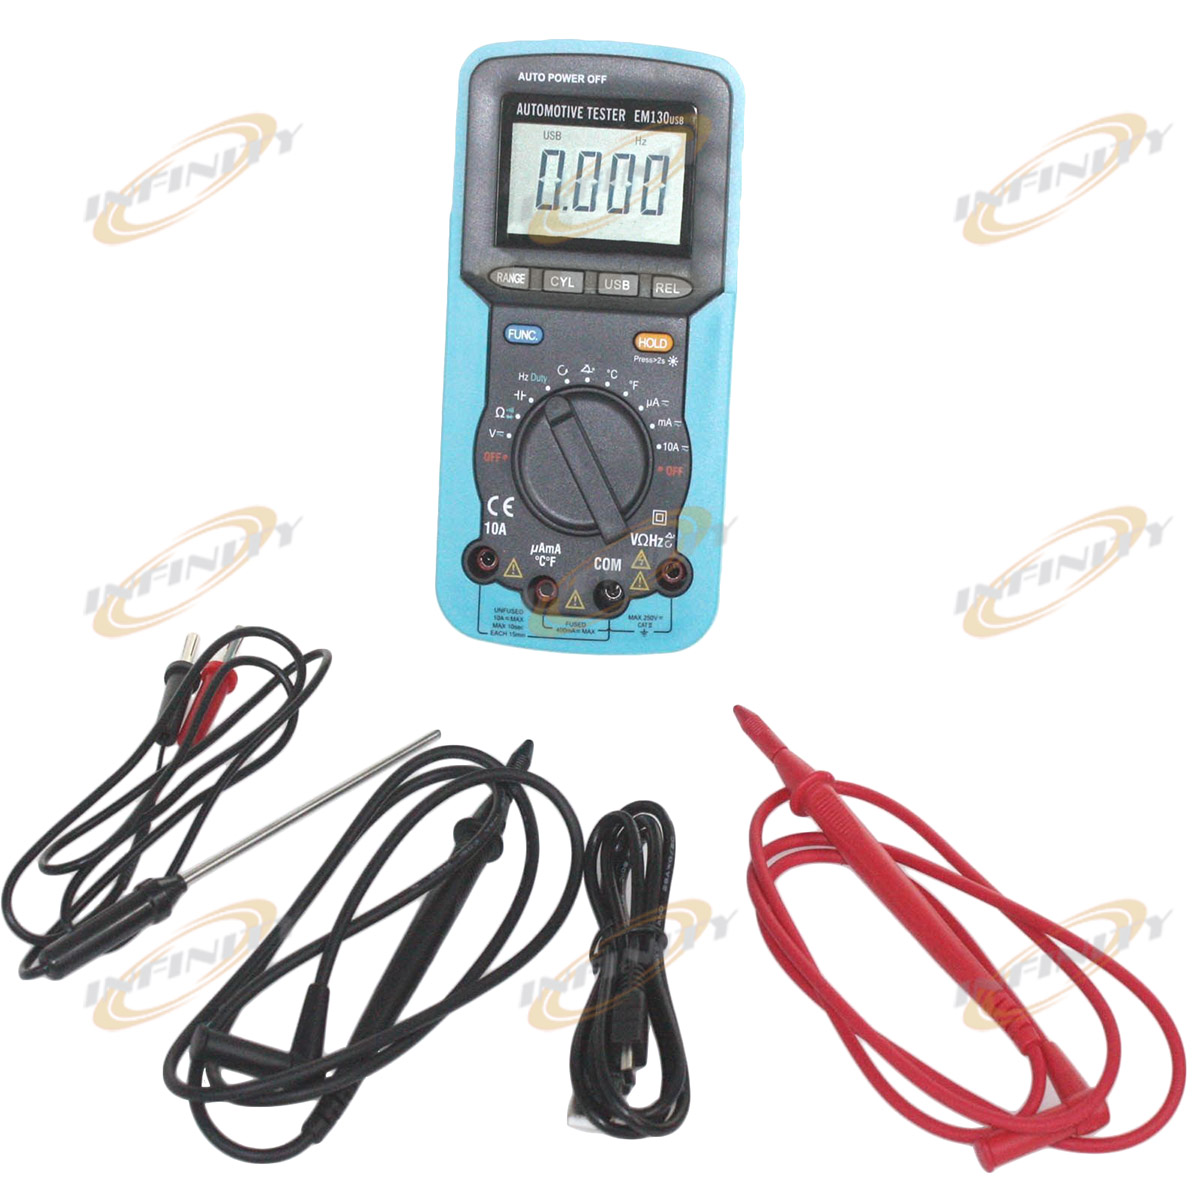 Search Auto Electrical Wiring Tester Handheld Digital Car Automotive Multimeter Volt Amp Ohm Temp Capacitance